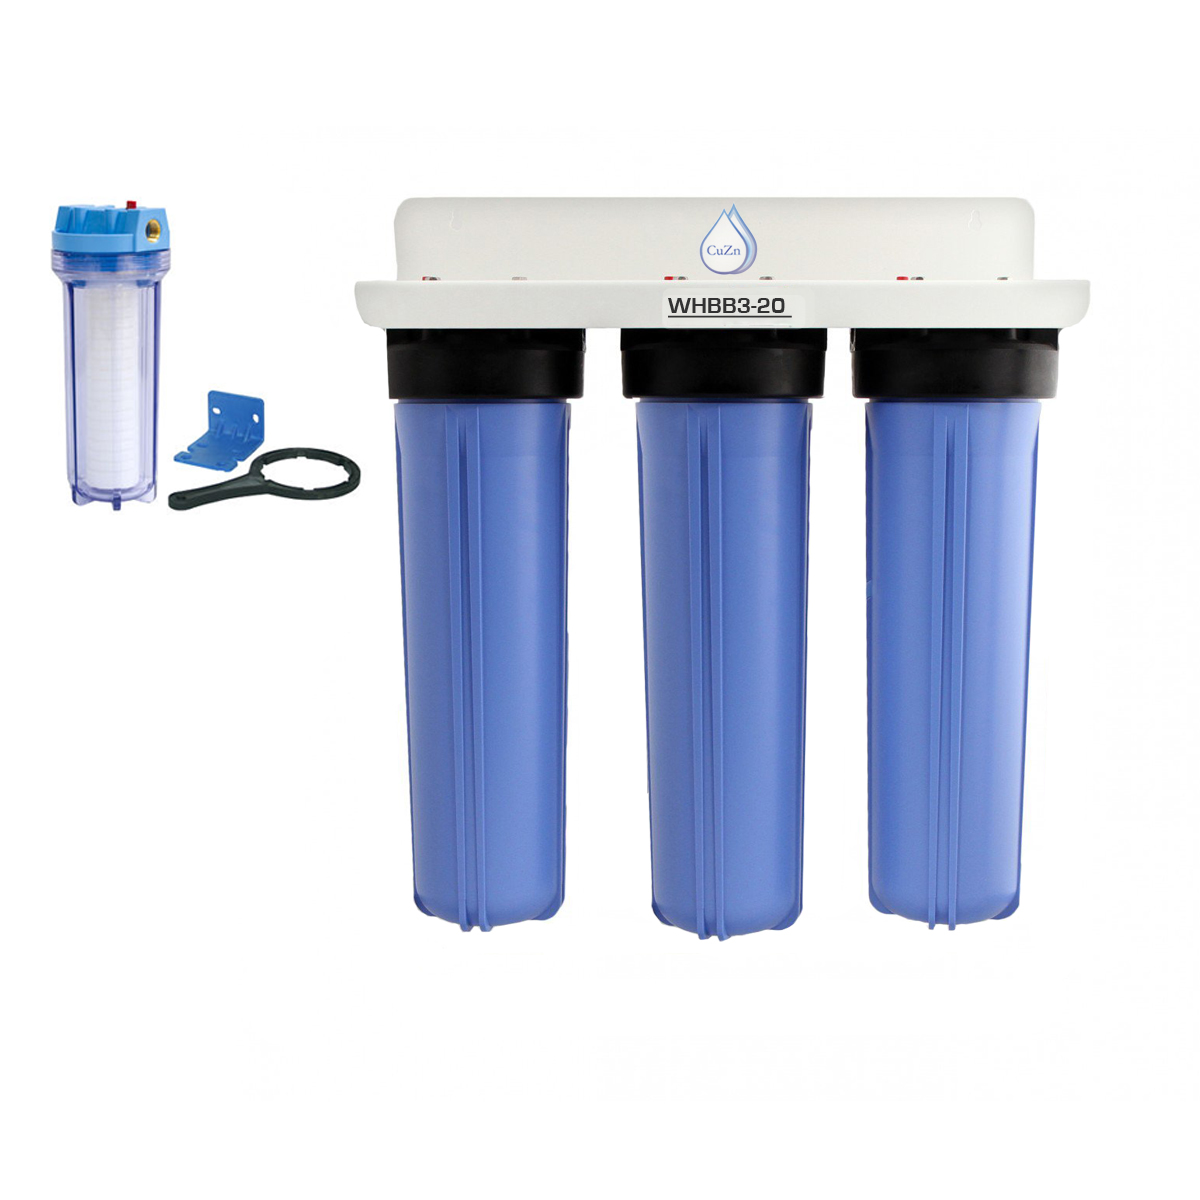 Whbb3 20a Arsenic Well Water Filtration System Cuzn